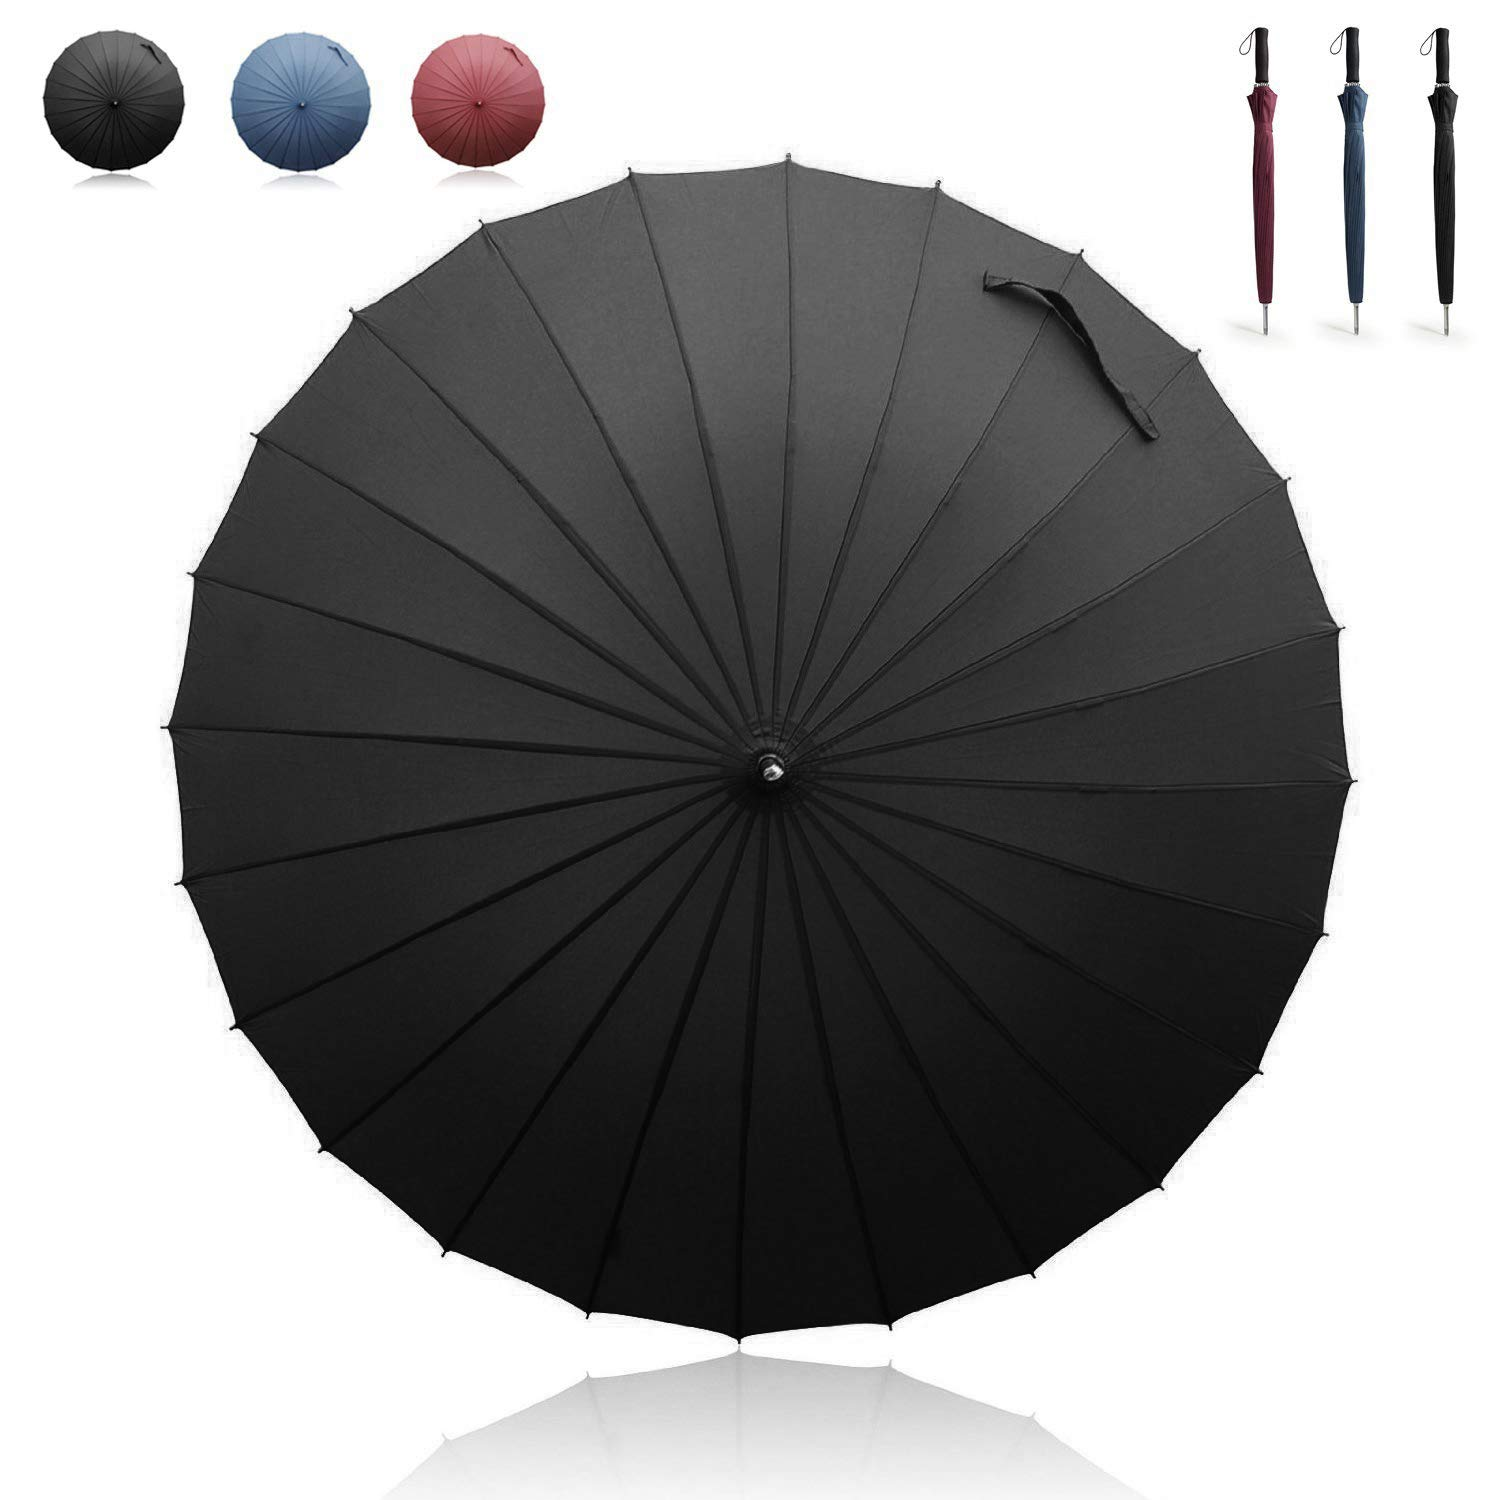 Becko Manual Open Close Umbrella Long Umbrella with 24 Ribs, Durable and Strong Enough for The Wind and Rain, Easy to Carry on Your Back by Its Own Bag